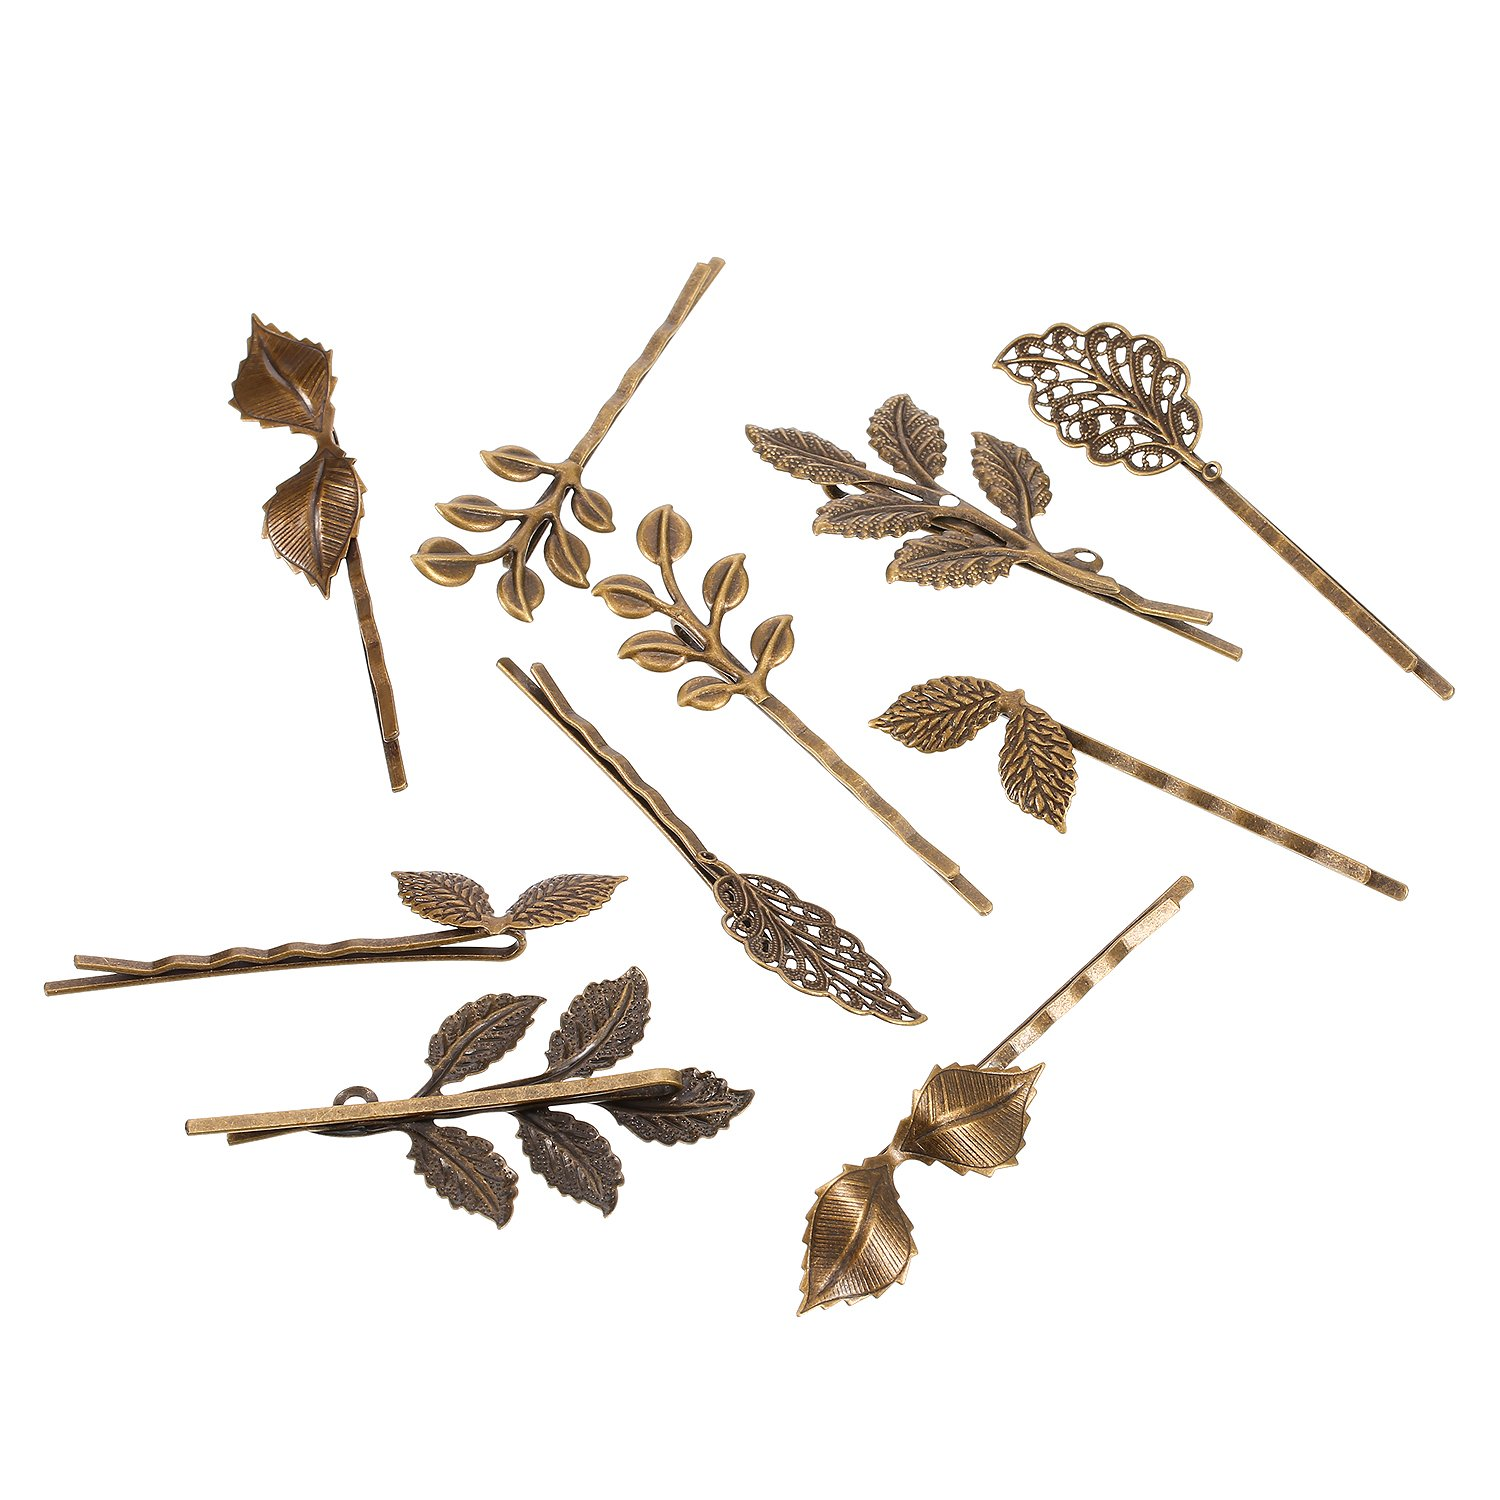 BBTO 22 Pieces Vintage Hair Clips Barrettes Bronze Leaf Bobby Pin Flower Butterfly Heart Hair Clip for Girls and Women, Mix Styles by BBTO (Image #3)